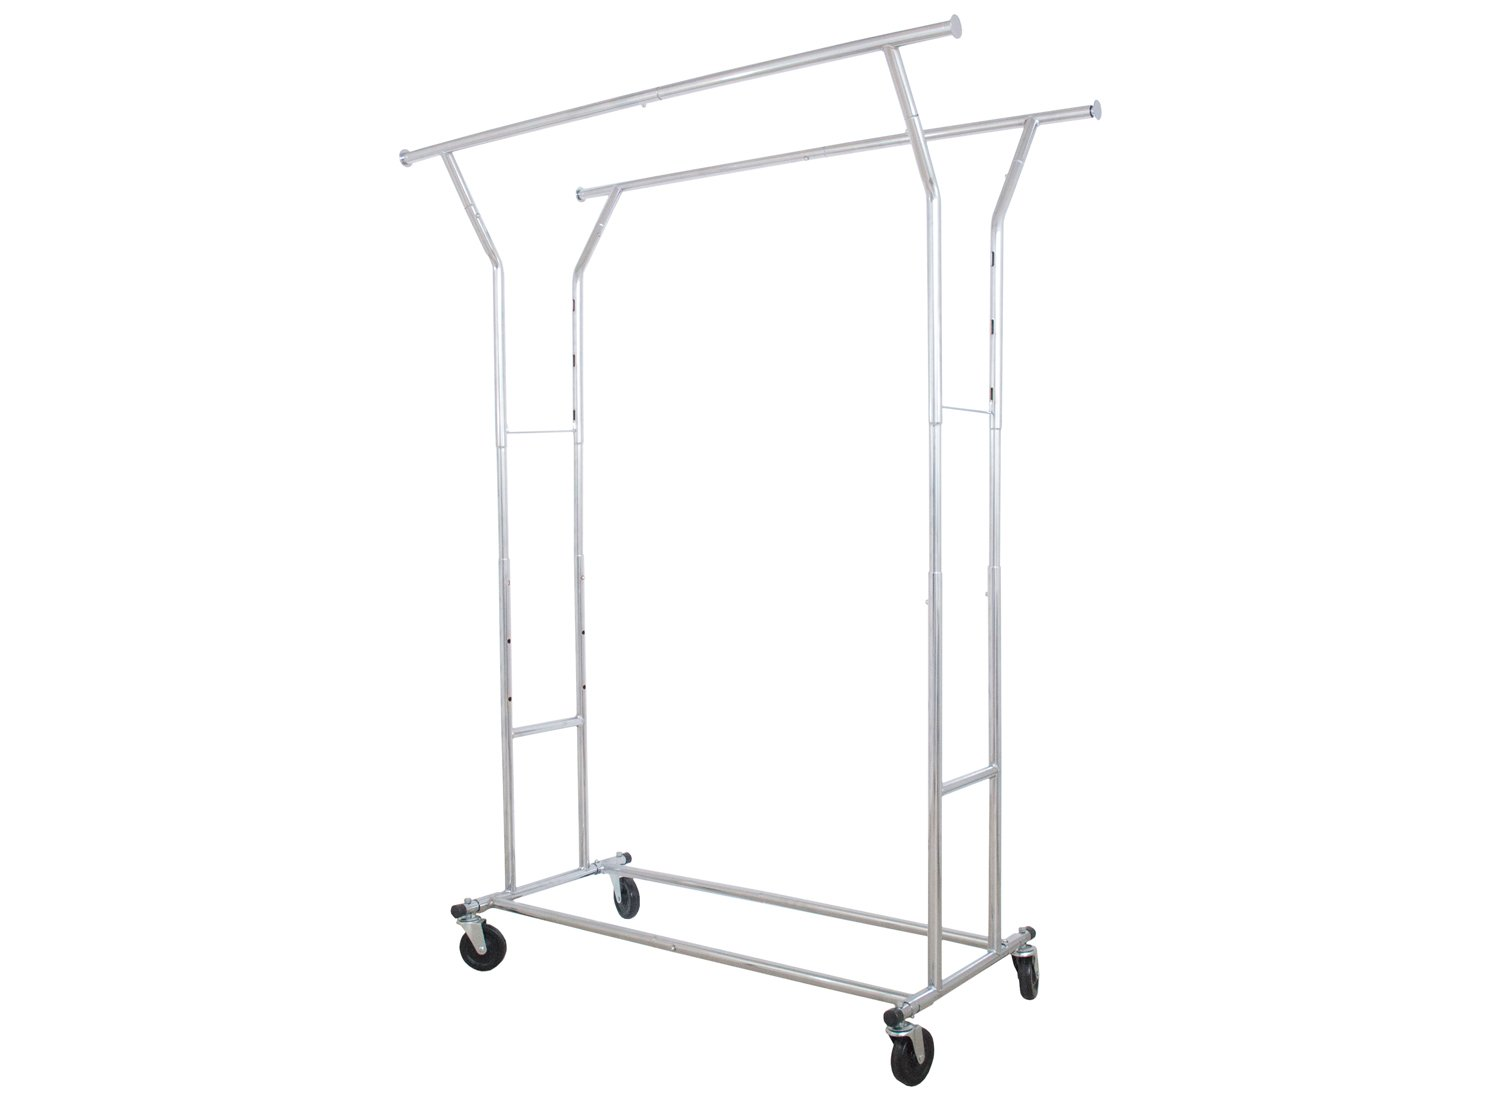 ForHauz Commercial Clothes Garment Rack Single or Double Rail